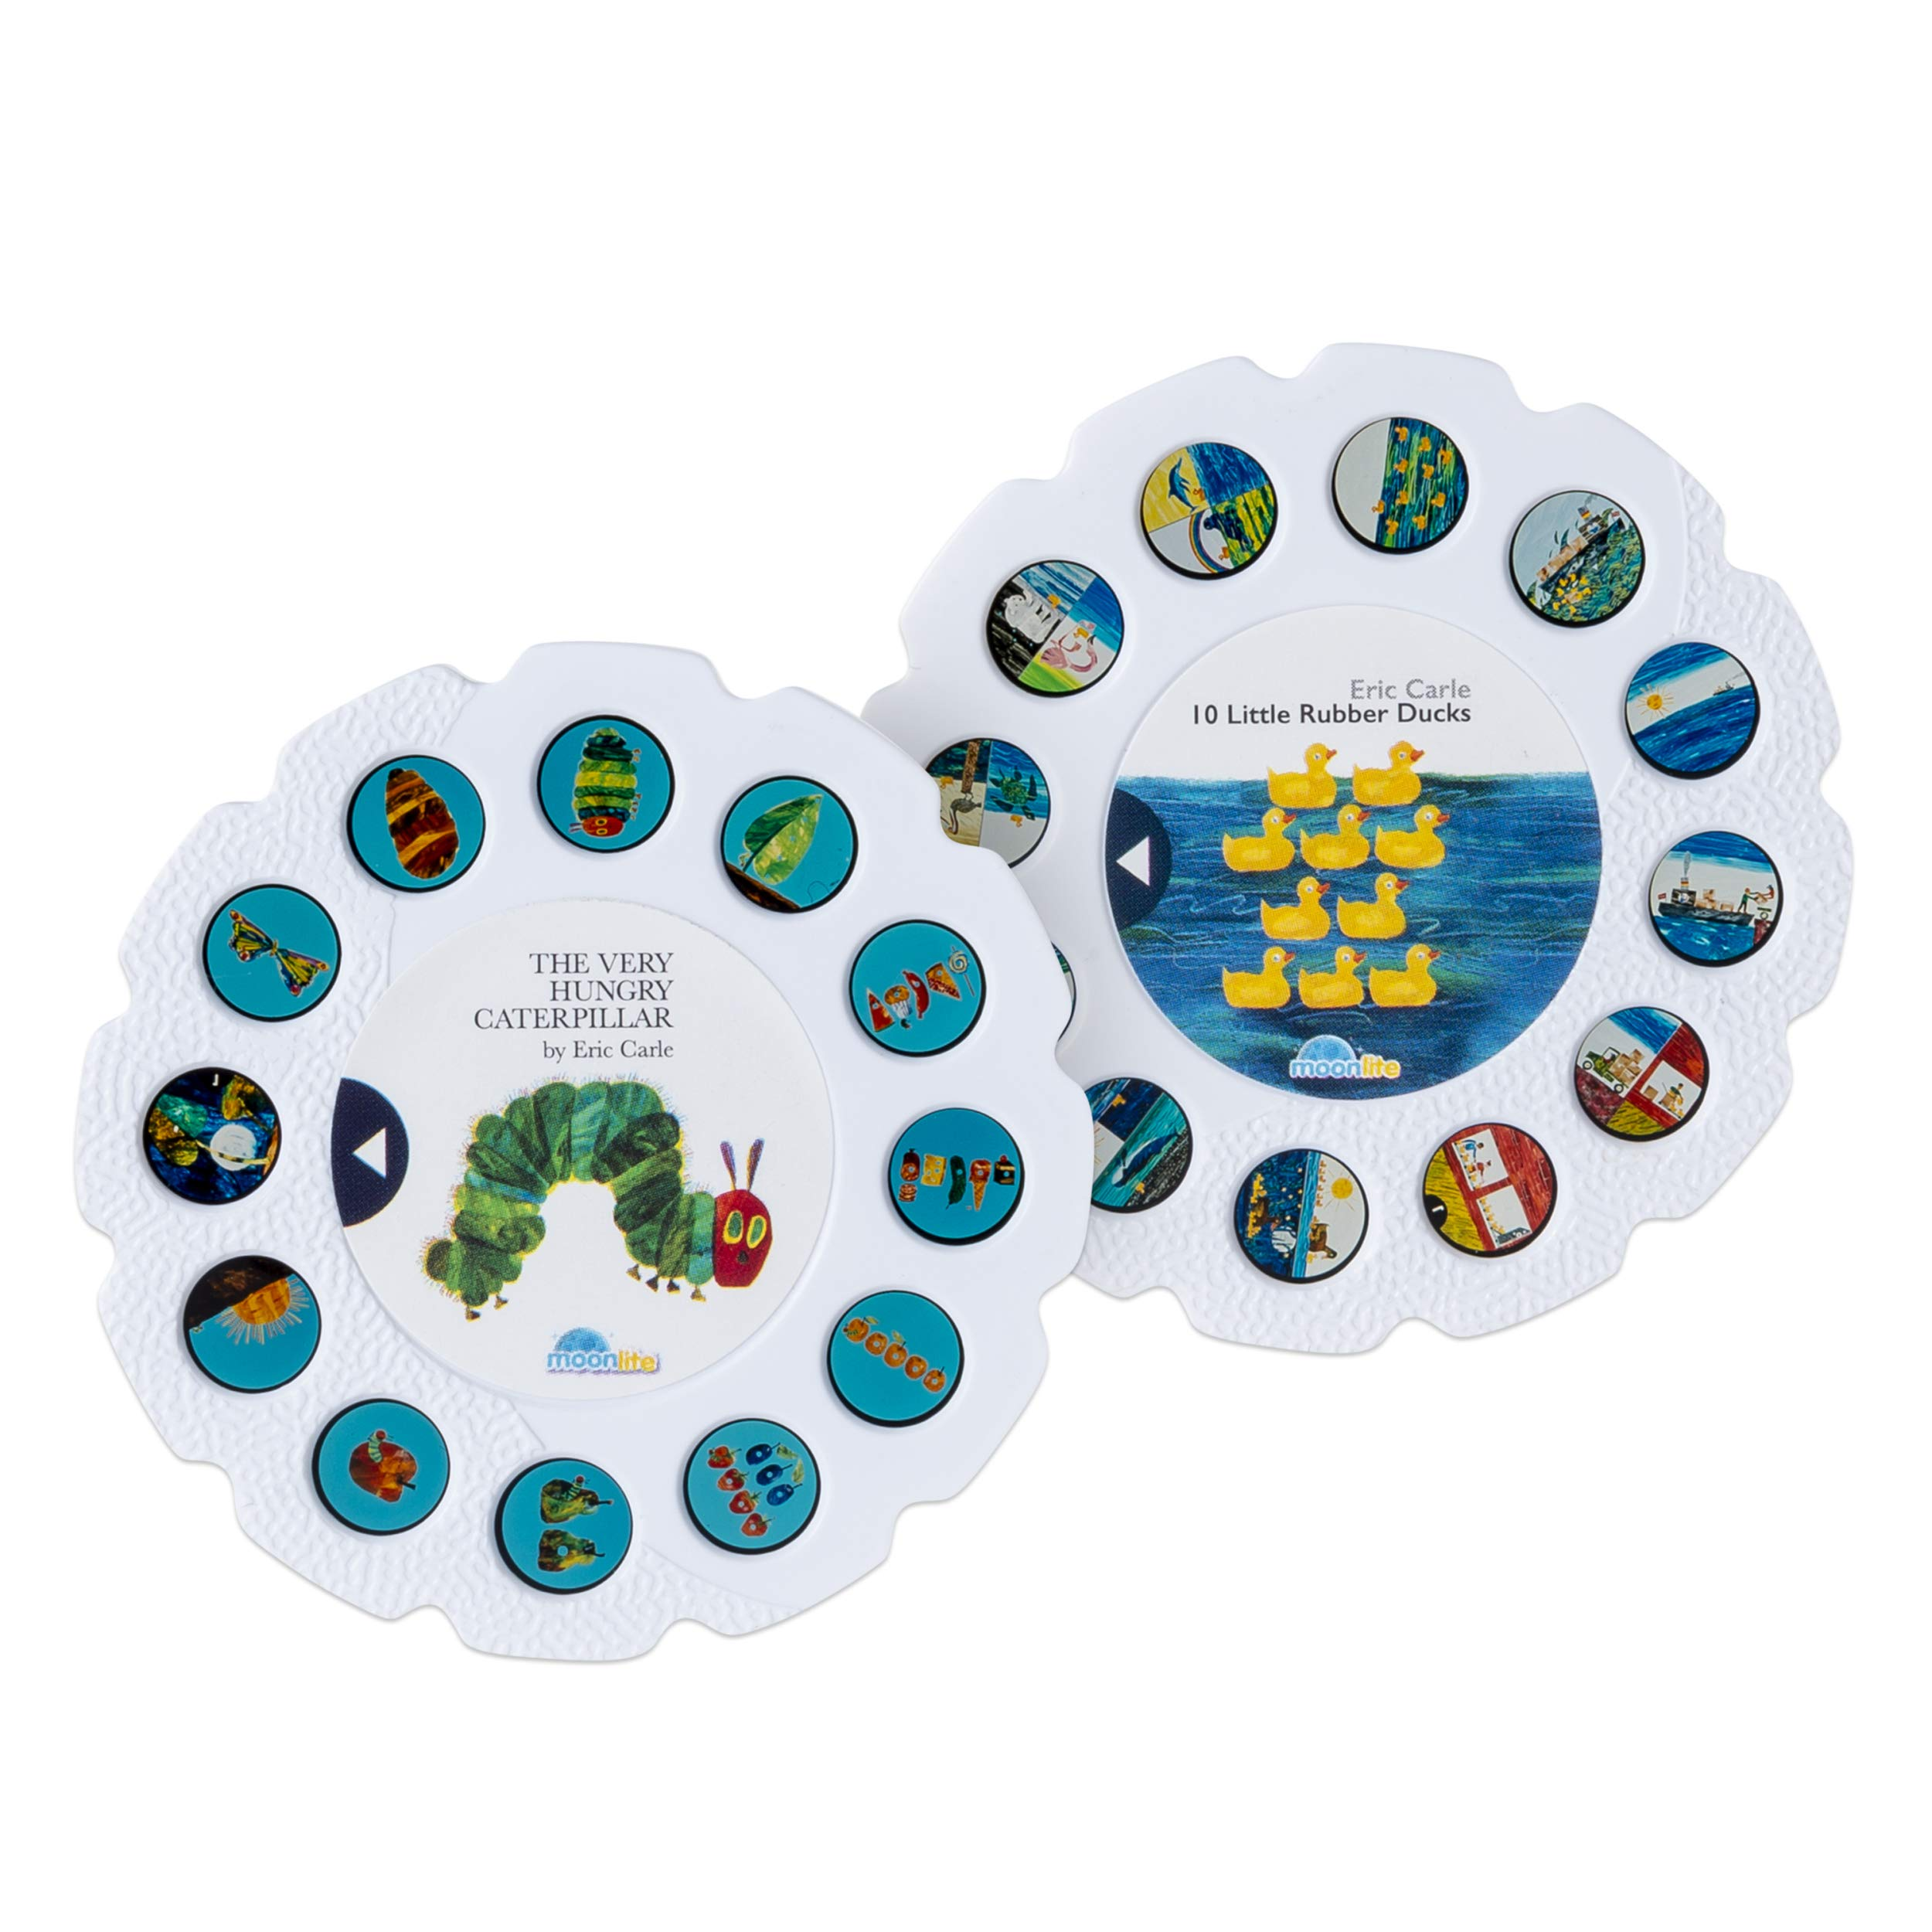 Moonlite - Eric Carle Junior Starter Pack, Storybook Projector for Smartphones with 2 Story Reels, For Ages 1 and Up by Moonlite (Image #8)